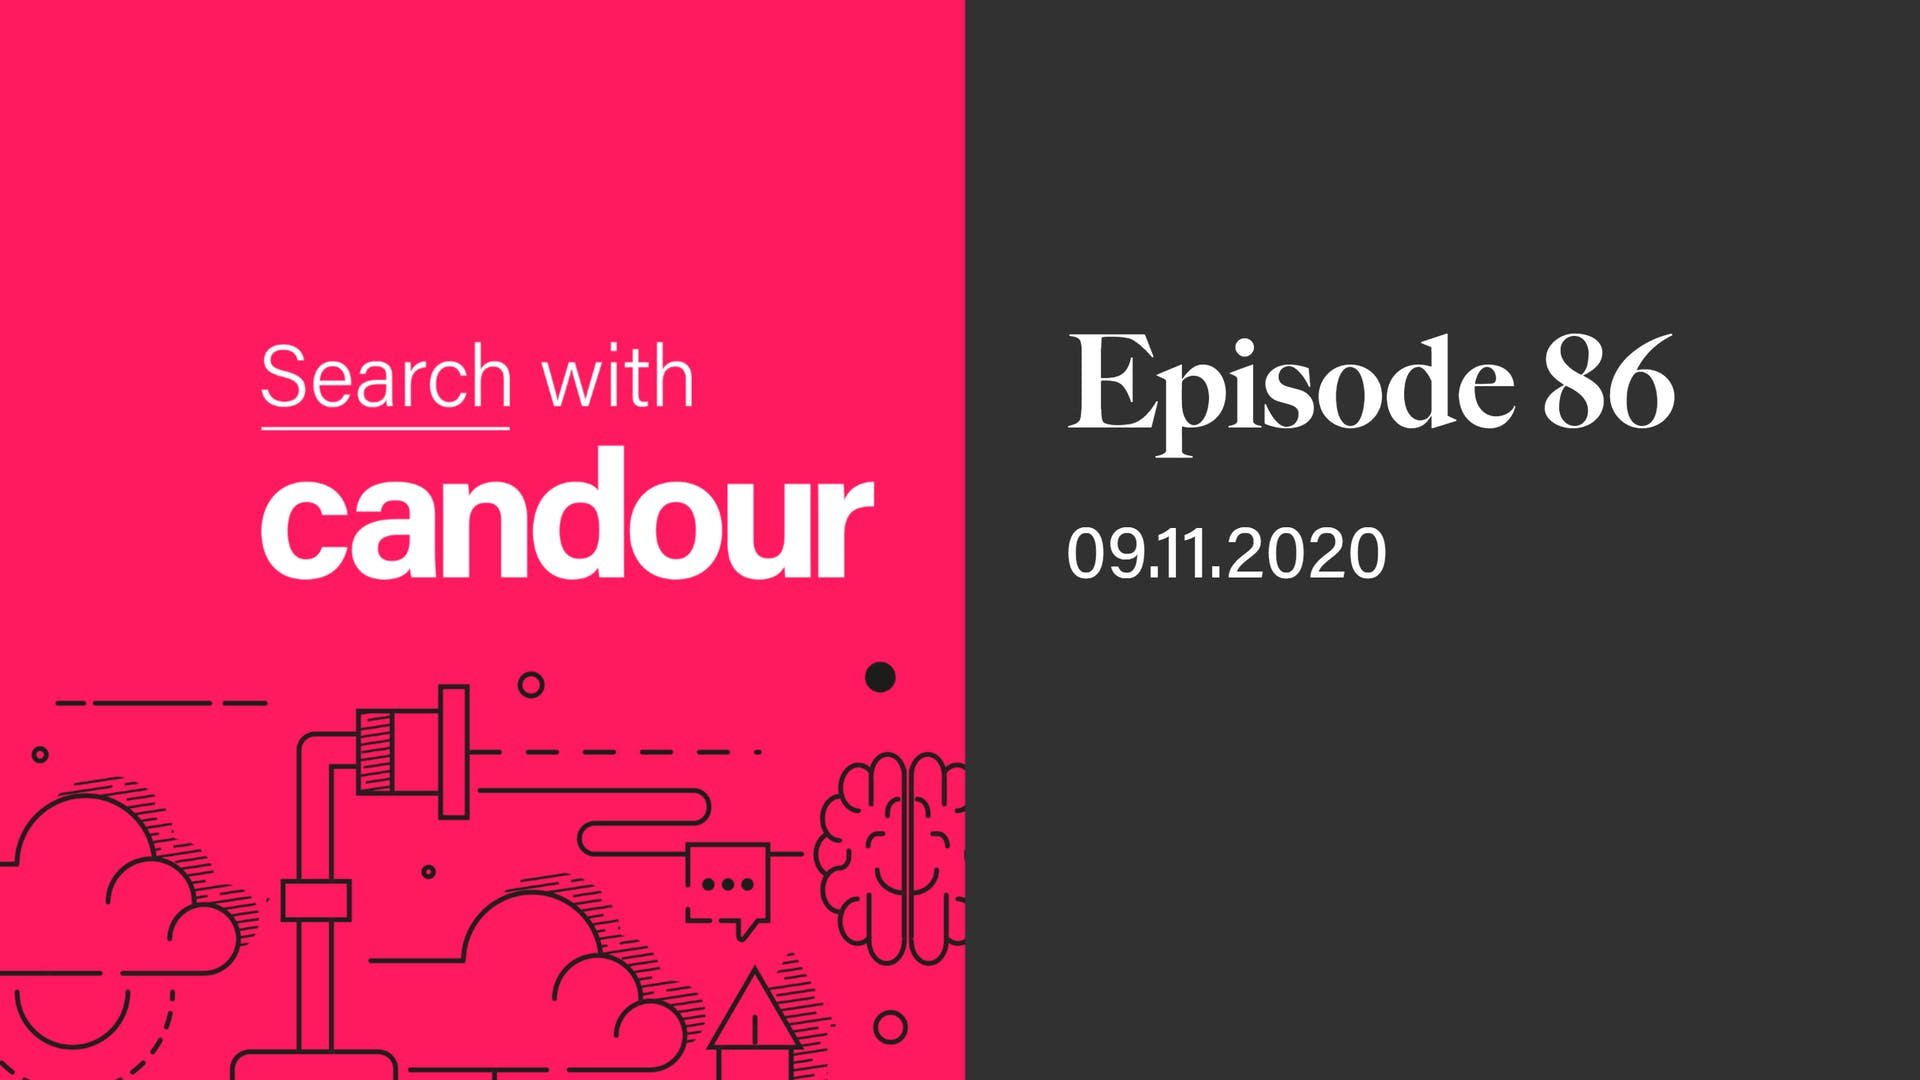 Episode 86 - Search with Candour